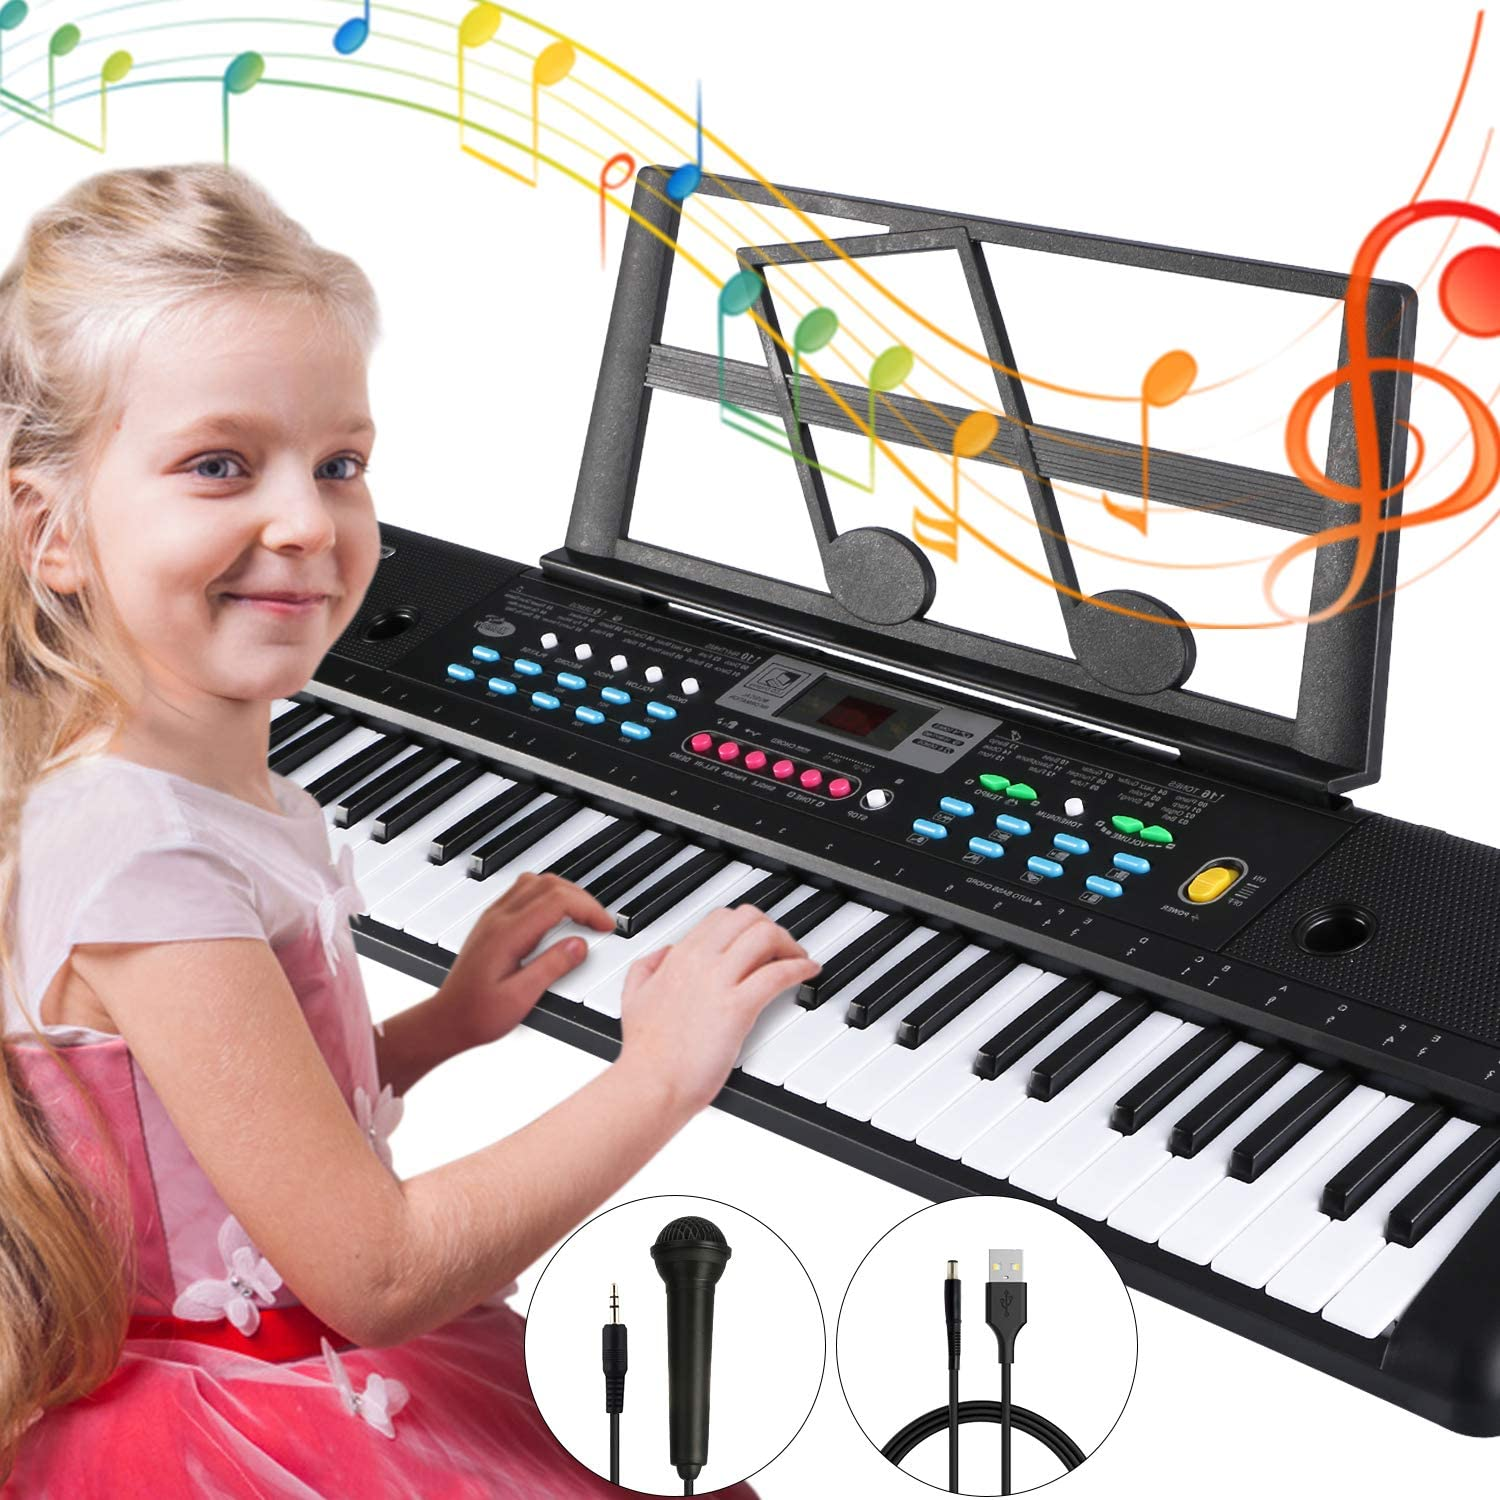 Electronic Keyboard Piano 61 Key, Tencoz Portable Piano Keyboard with Music Stand, Microphone, Power Supply Digital Music Piano Keyboard for Kids